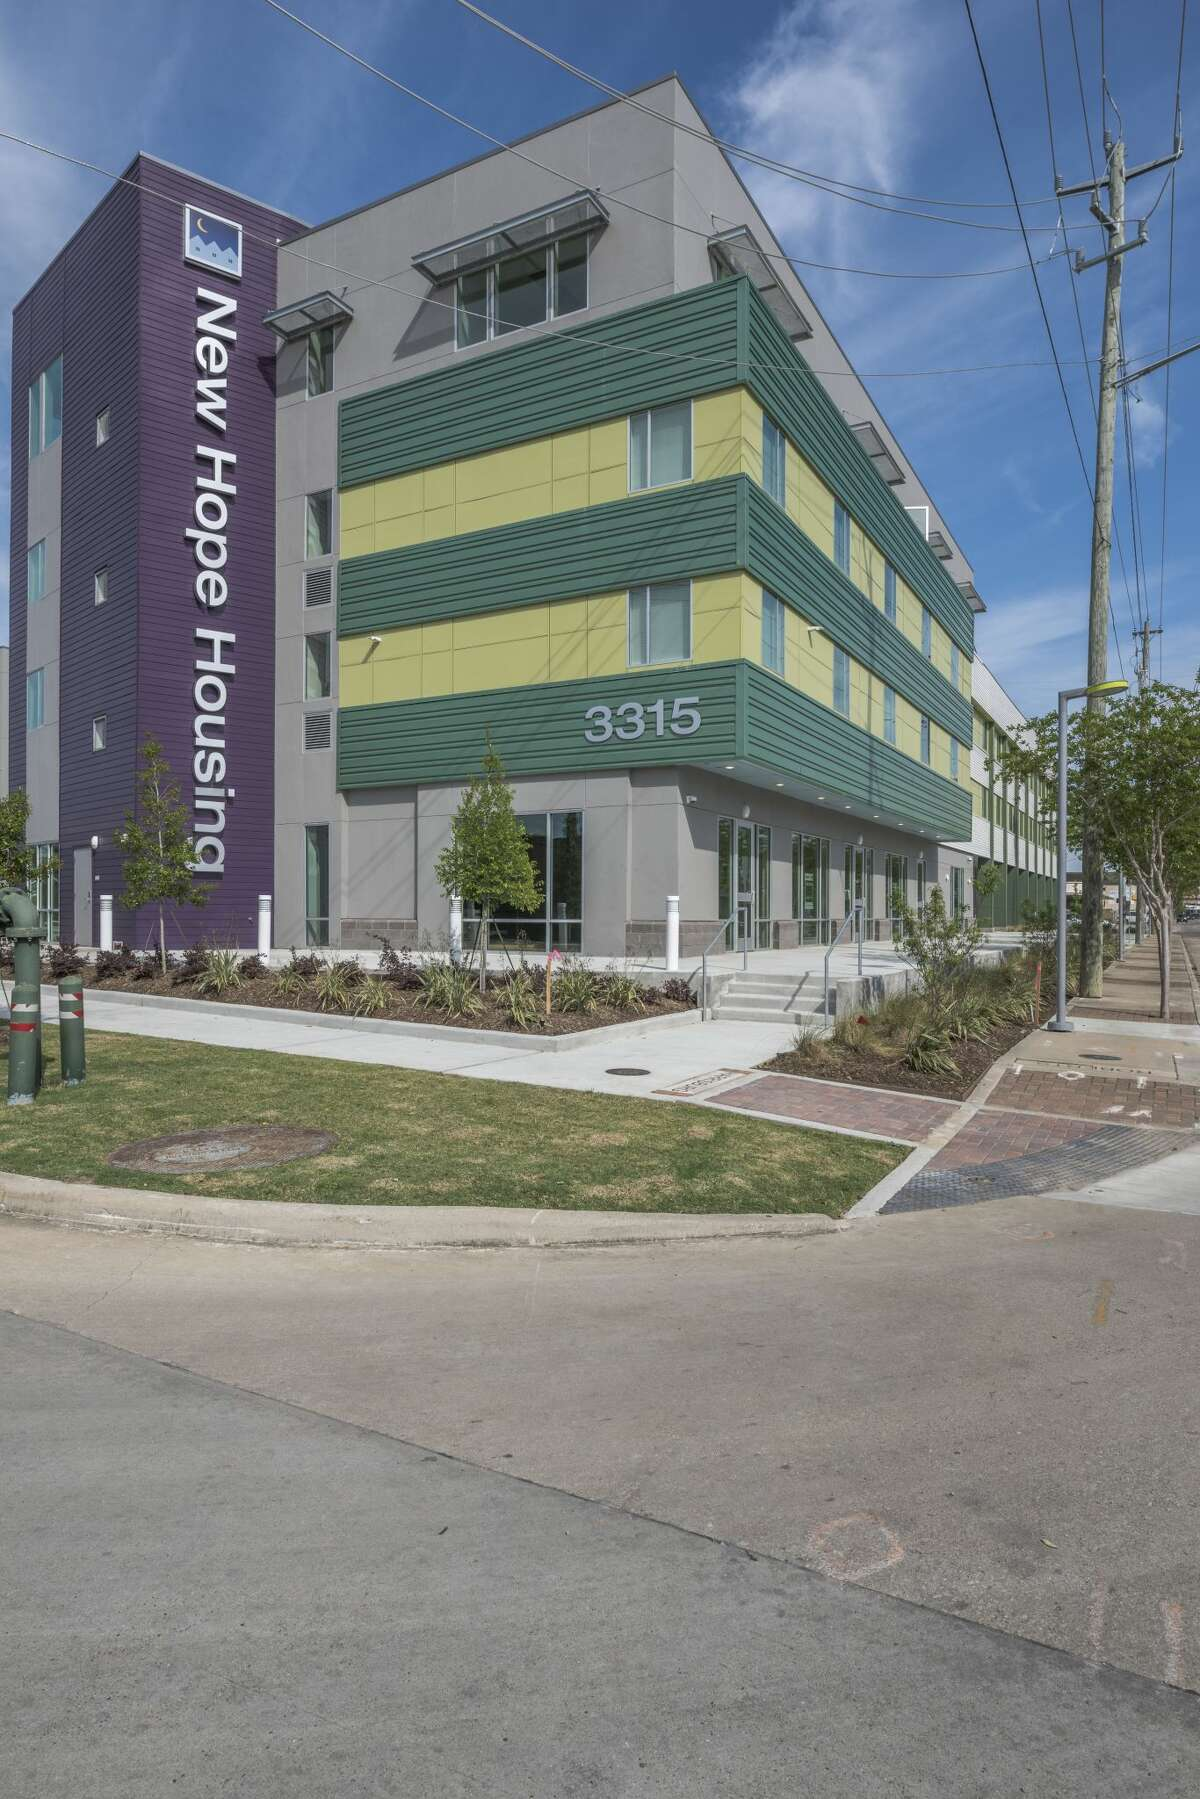 New Hope Housing at Harrisburg is a mixed-use development that incorporates street-level retail and commercial office space with single-room occupancy residential apartment homes.